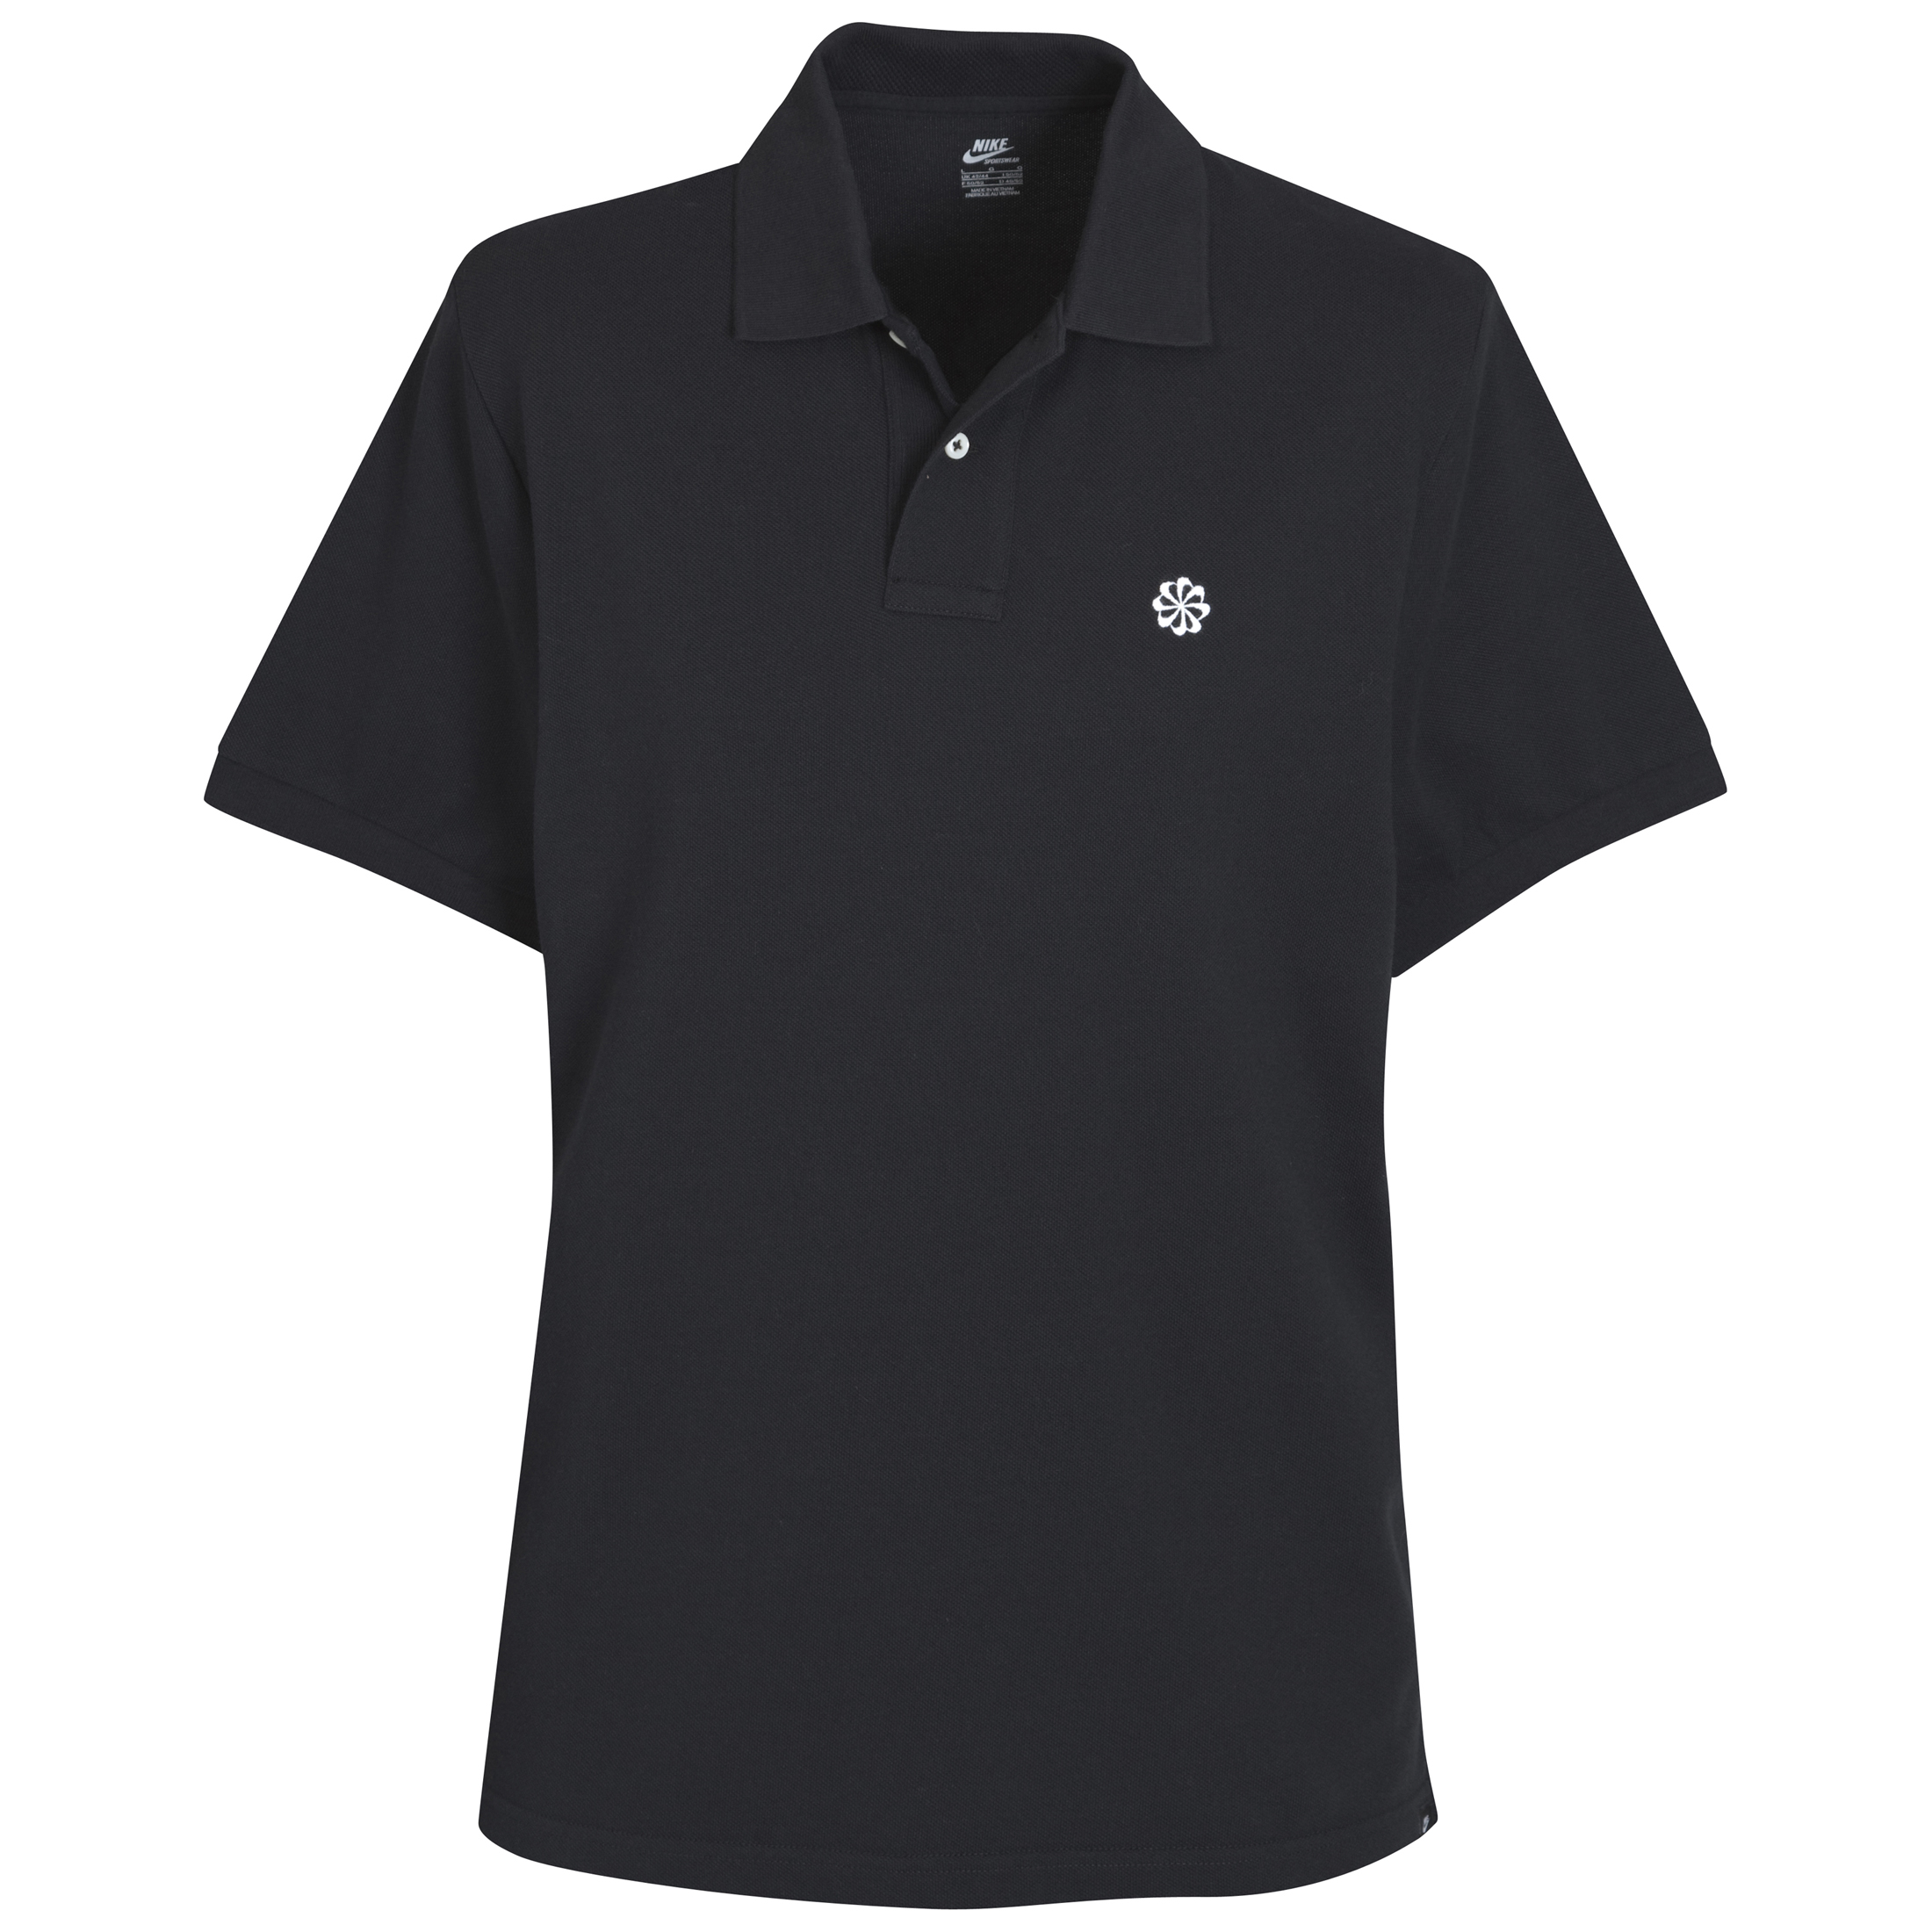 Nike Grand Slam Pique Polo Shirt - Black